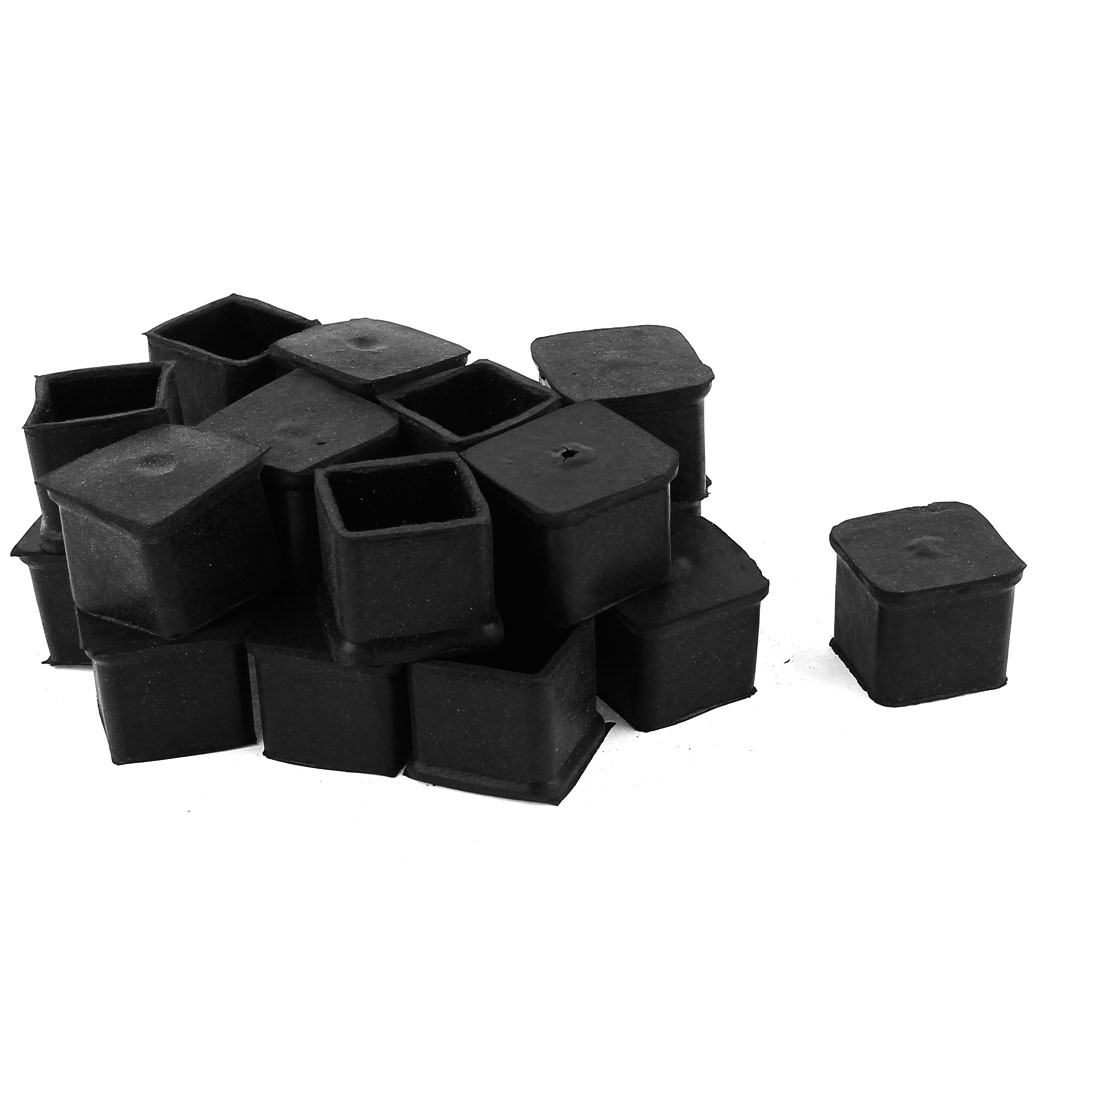 Square Shape Furniture Foot Covers Protector 30mmx30mm Black 20pcs